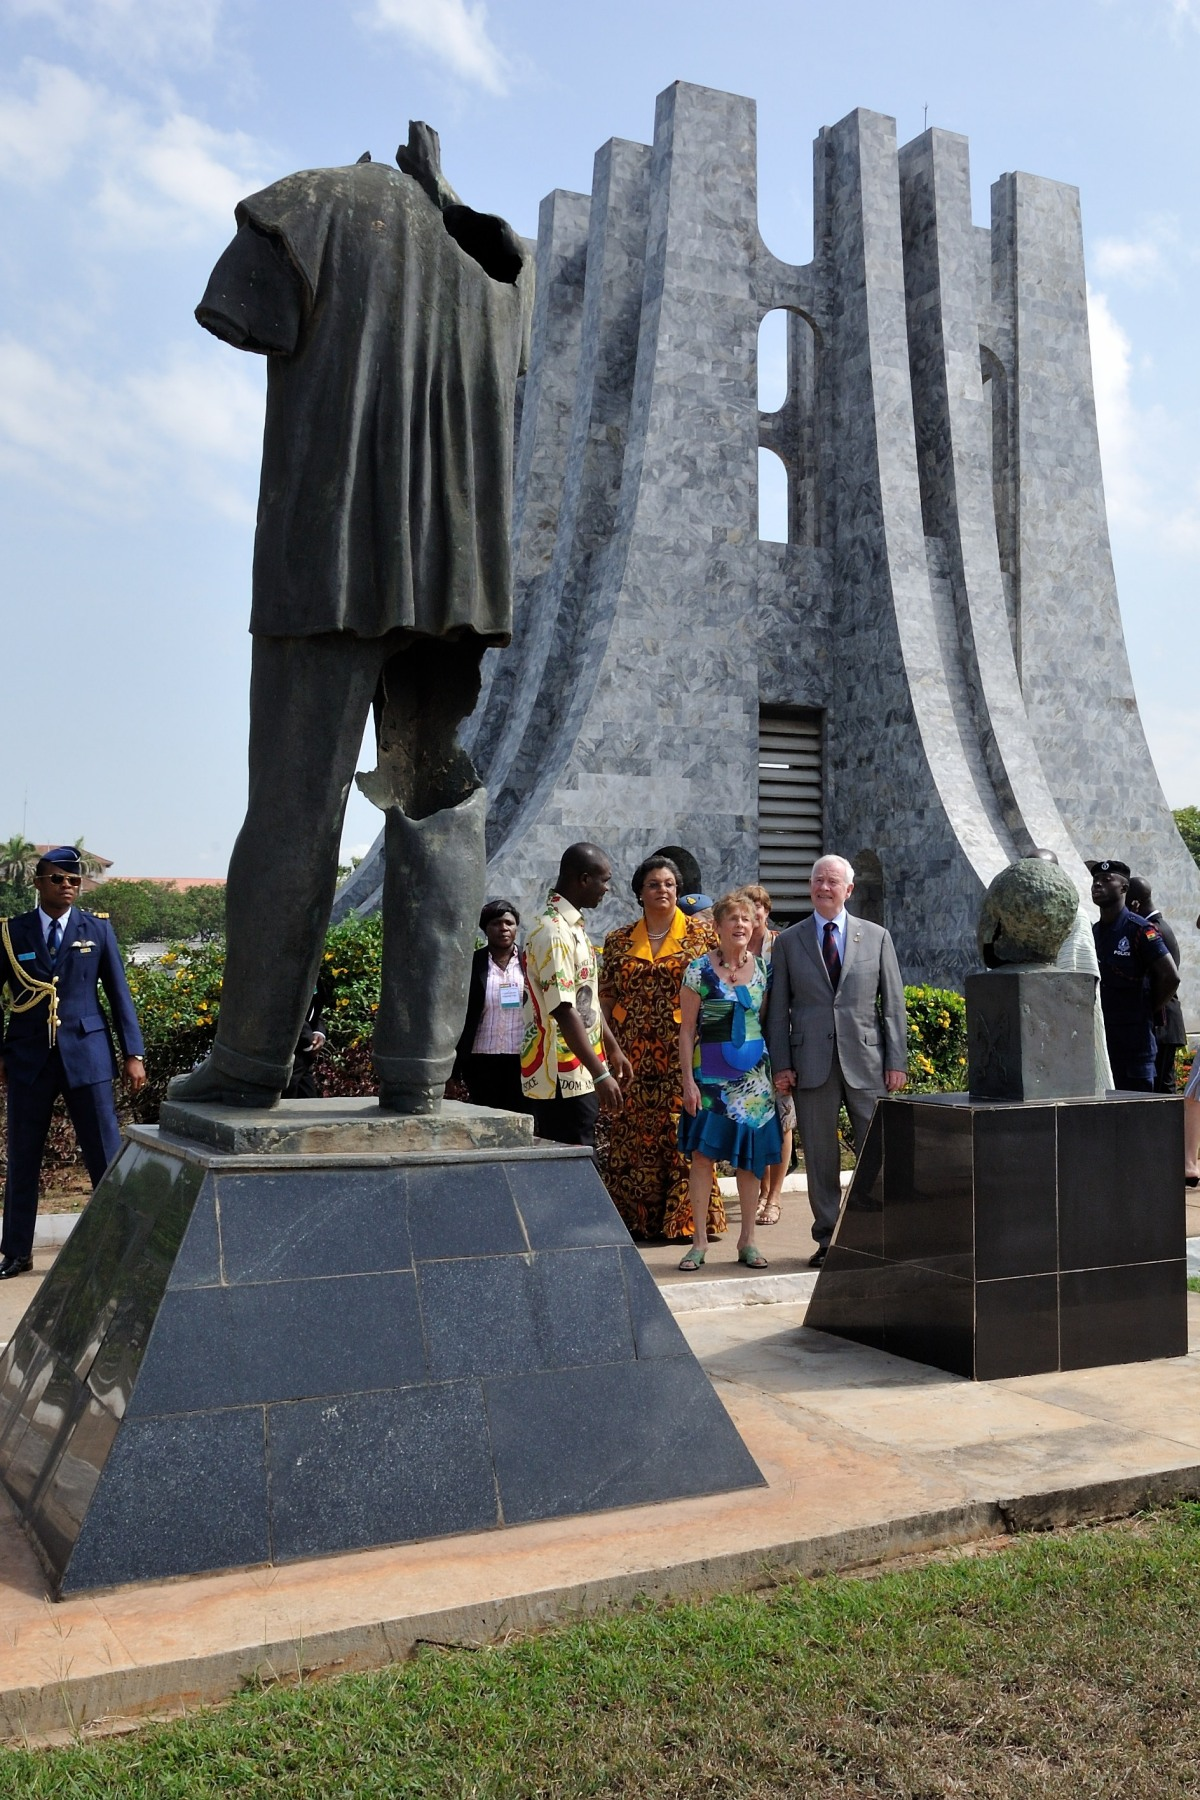 Following the ceremony, Their Excellencies took a minute to look at the statue of Dr. Kwame Nkrumah. The statue's head was cut off during a coup in 1966.